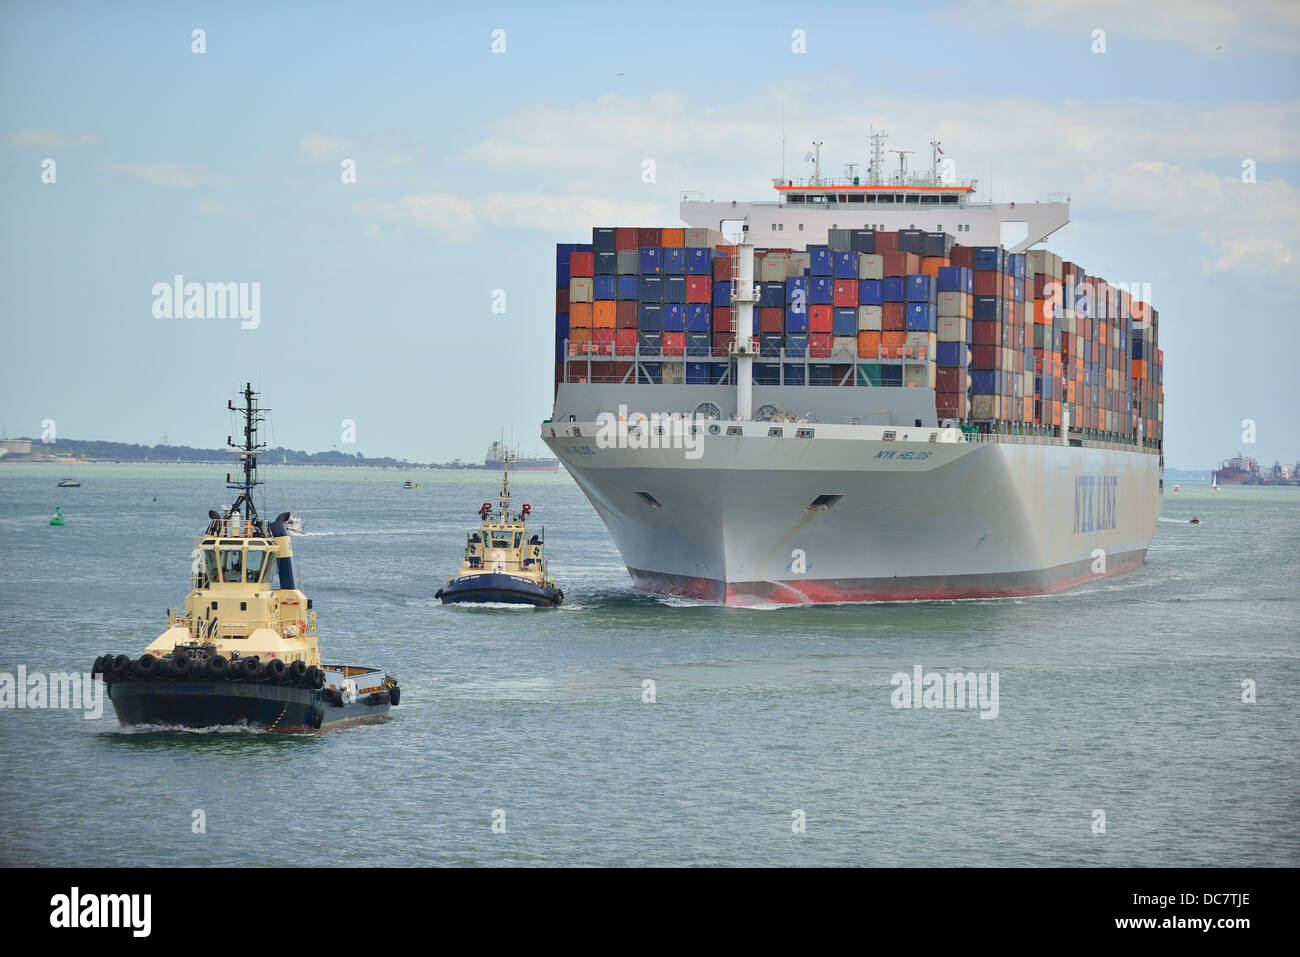 Container ship  in Southampton Waters  with two tugs assisting ship to its docking berth at Southampton , UK - Stock Image